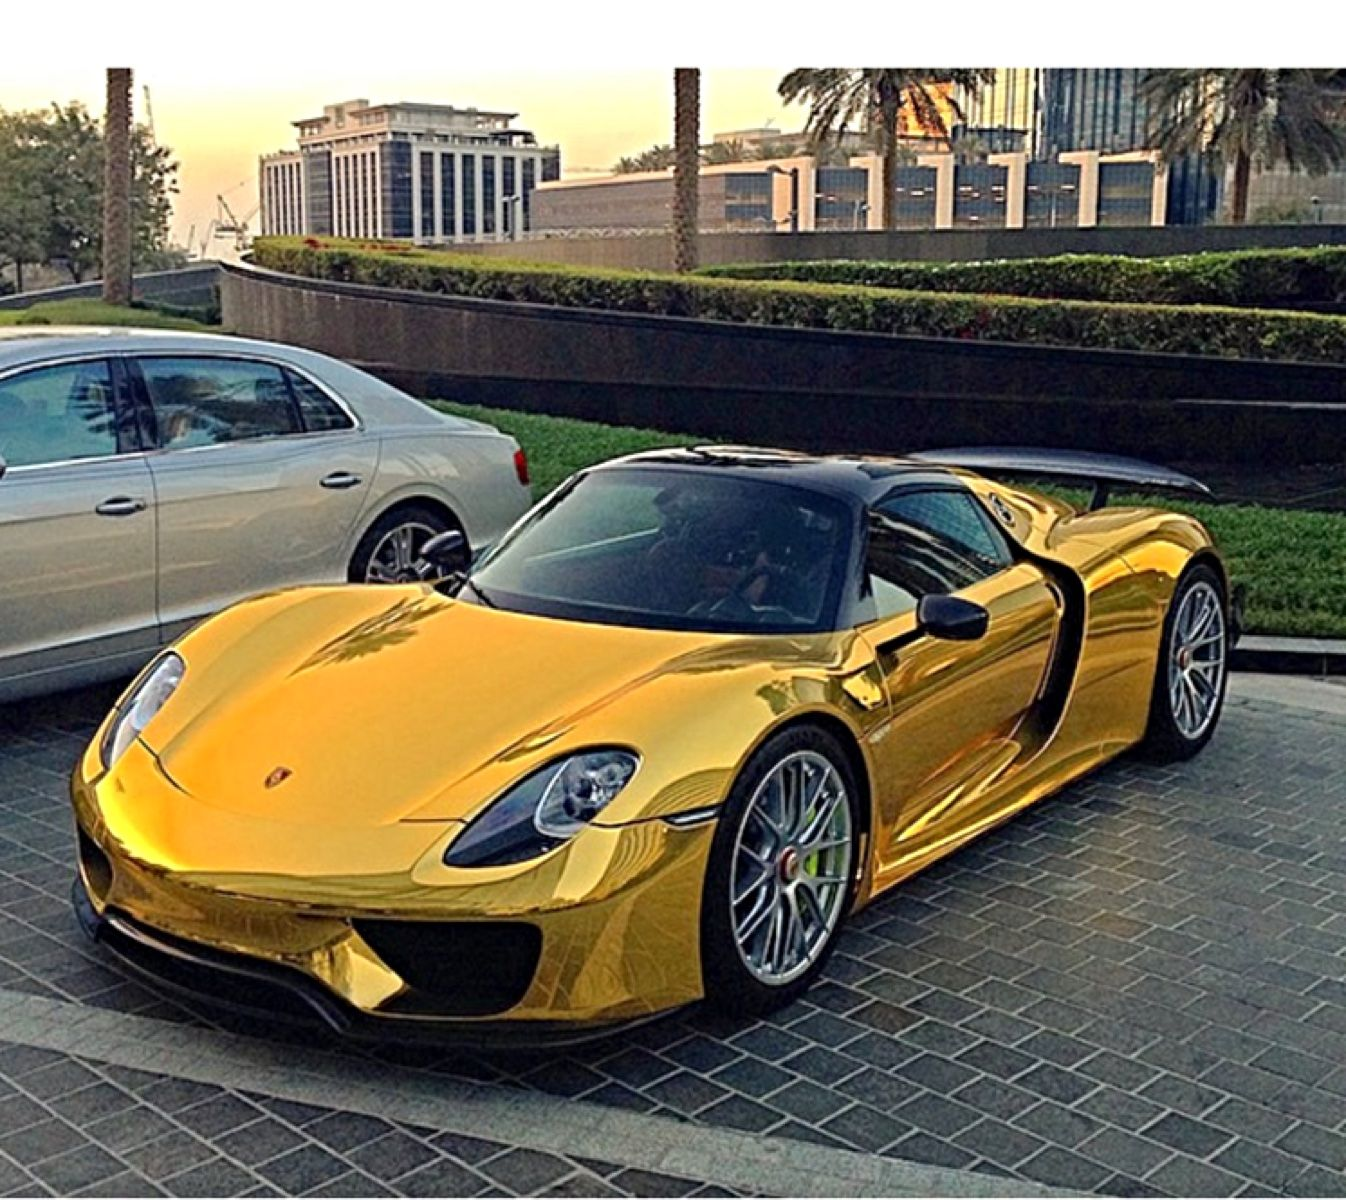 Pin On Lifestyles Of The Rich (Cool Cars, Houses, Jewelry